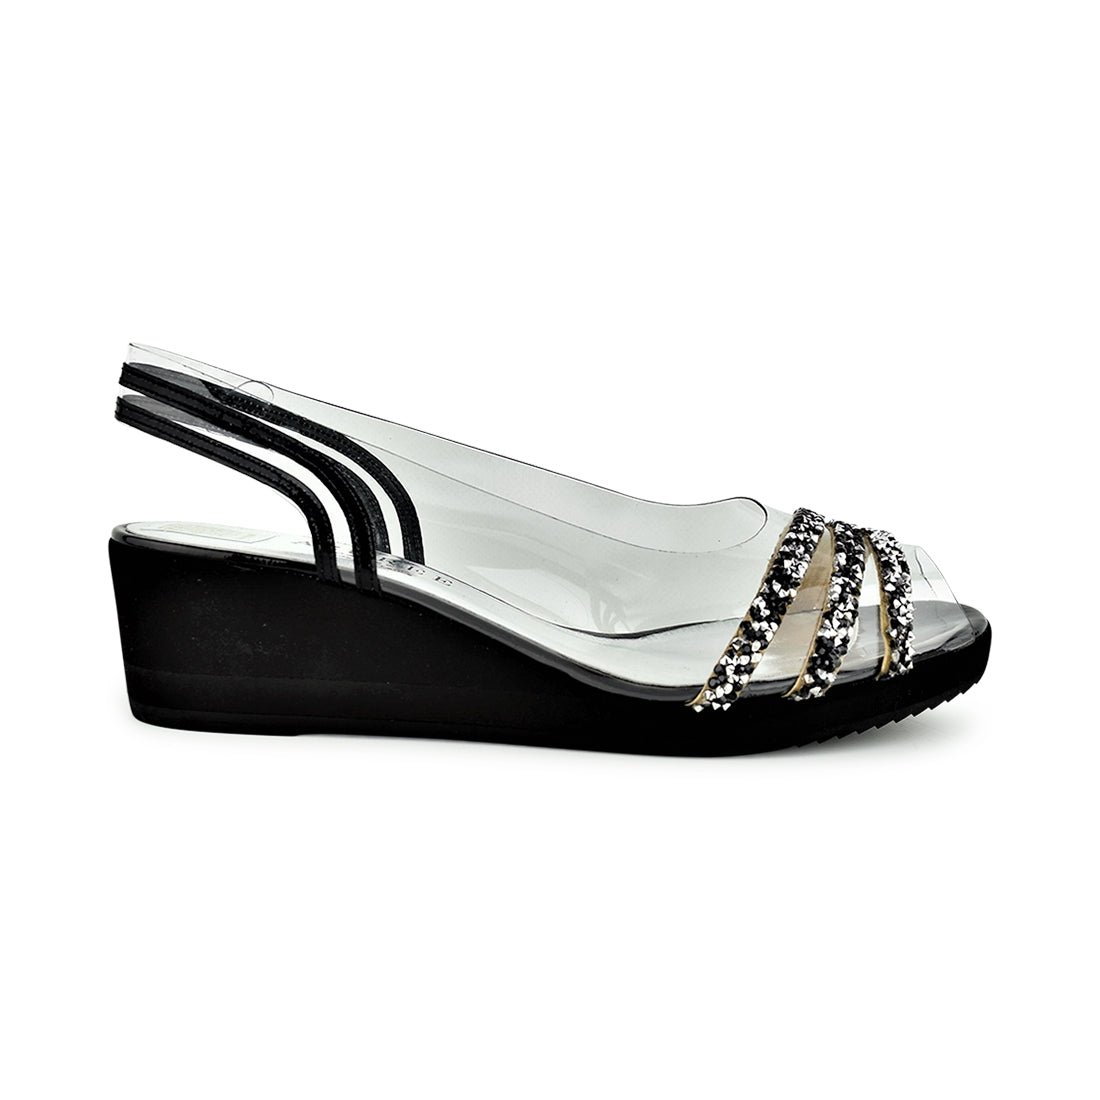 NAPOLI - Azuree Wedge Sling Back Black Multi